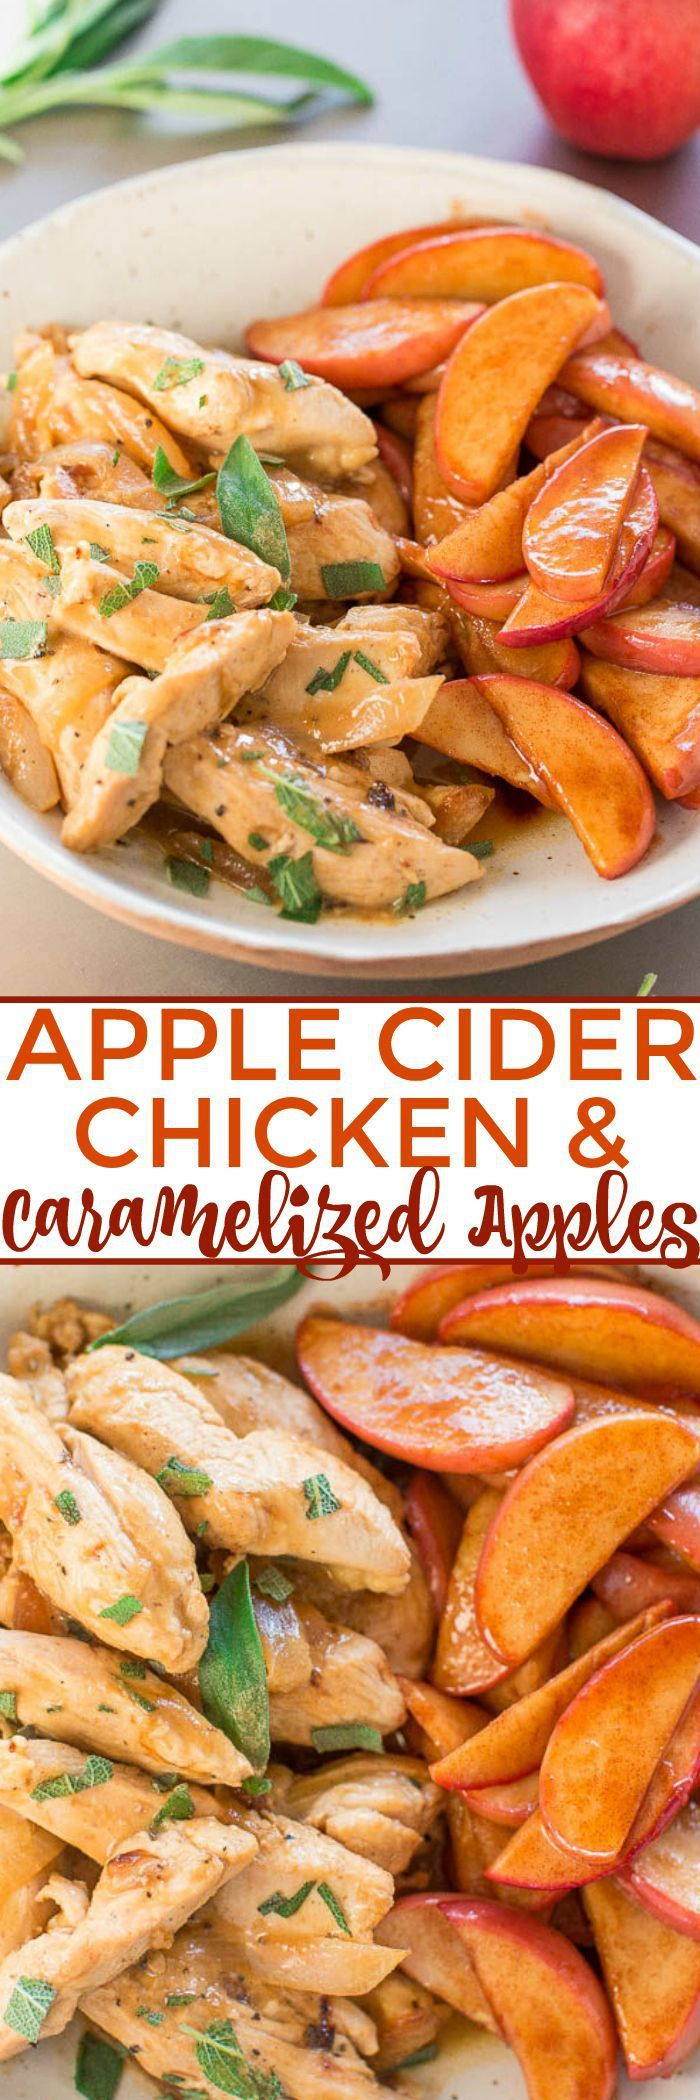 Apple Cider Chicken with Caramelized Apples  The flavors of FALL in an EASY dish ready in 30 MINUTES!! Chicken simmered